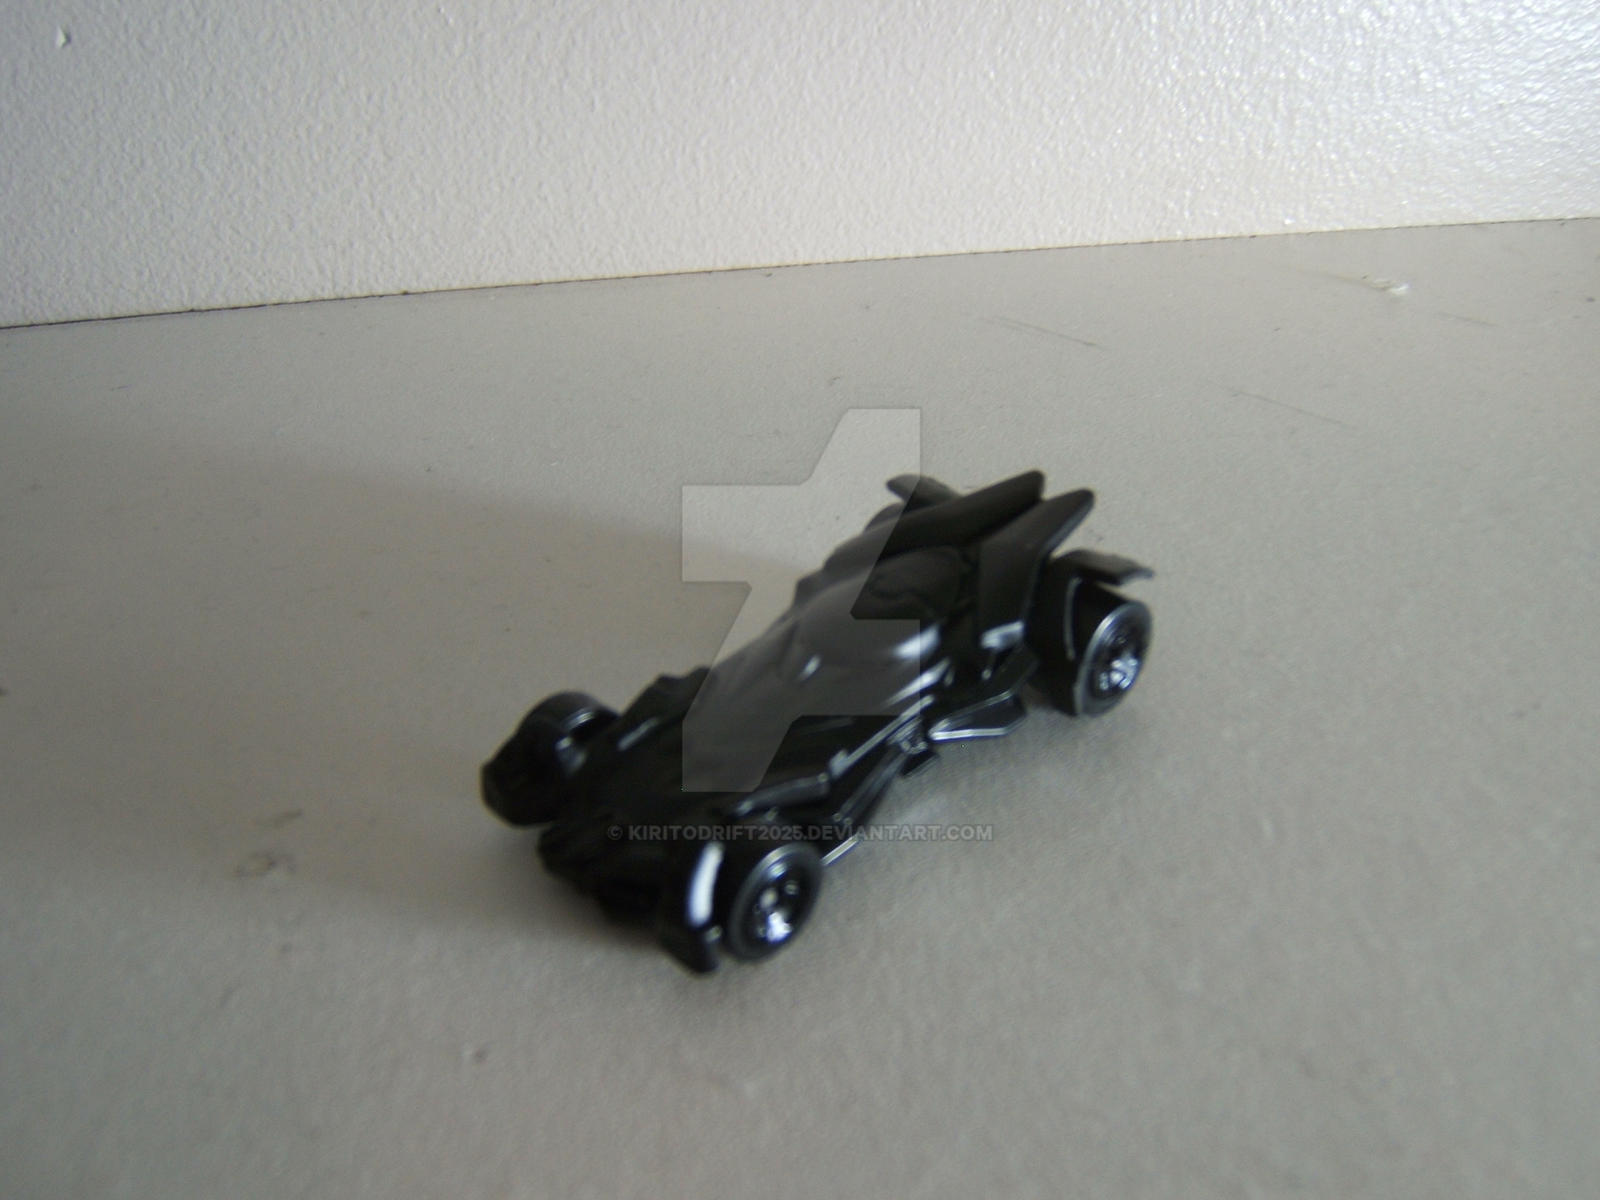 Hot wheels 2016 batmobile by kiritodrift2025 on deviantart for 9 salon hot wheels 2016